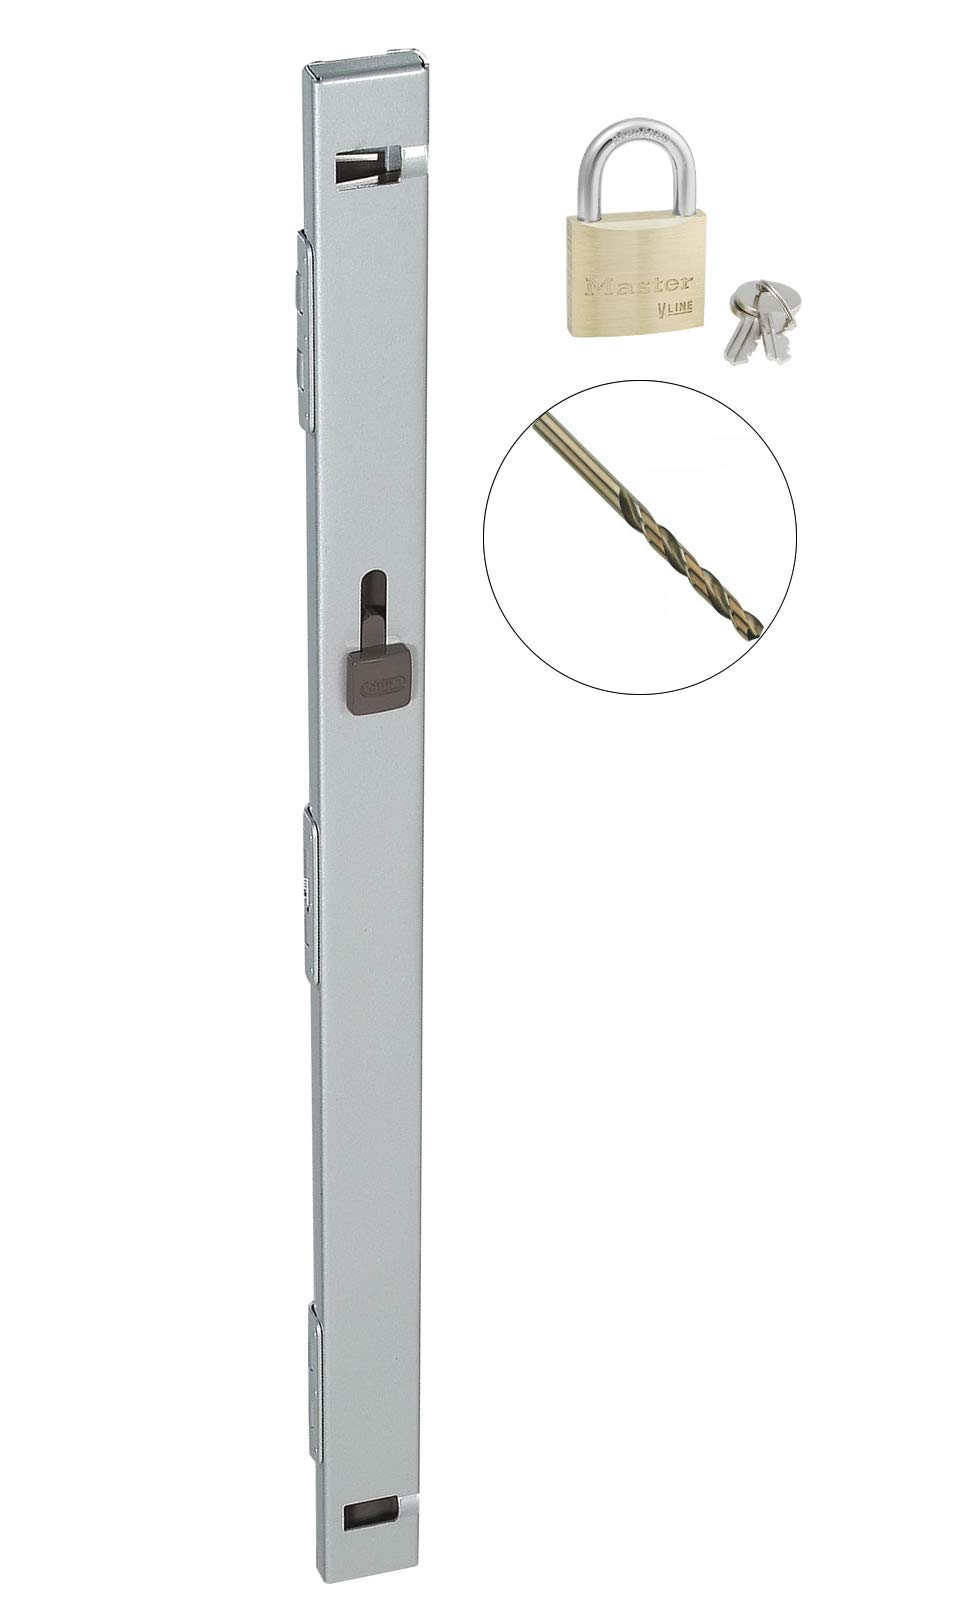 File Locking Bar - Gray with Drill Bit and Master Lock Keyed Padlock Included - 22.5'' Long - for use on a 2 Drawer File Cabinet